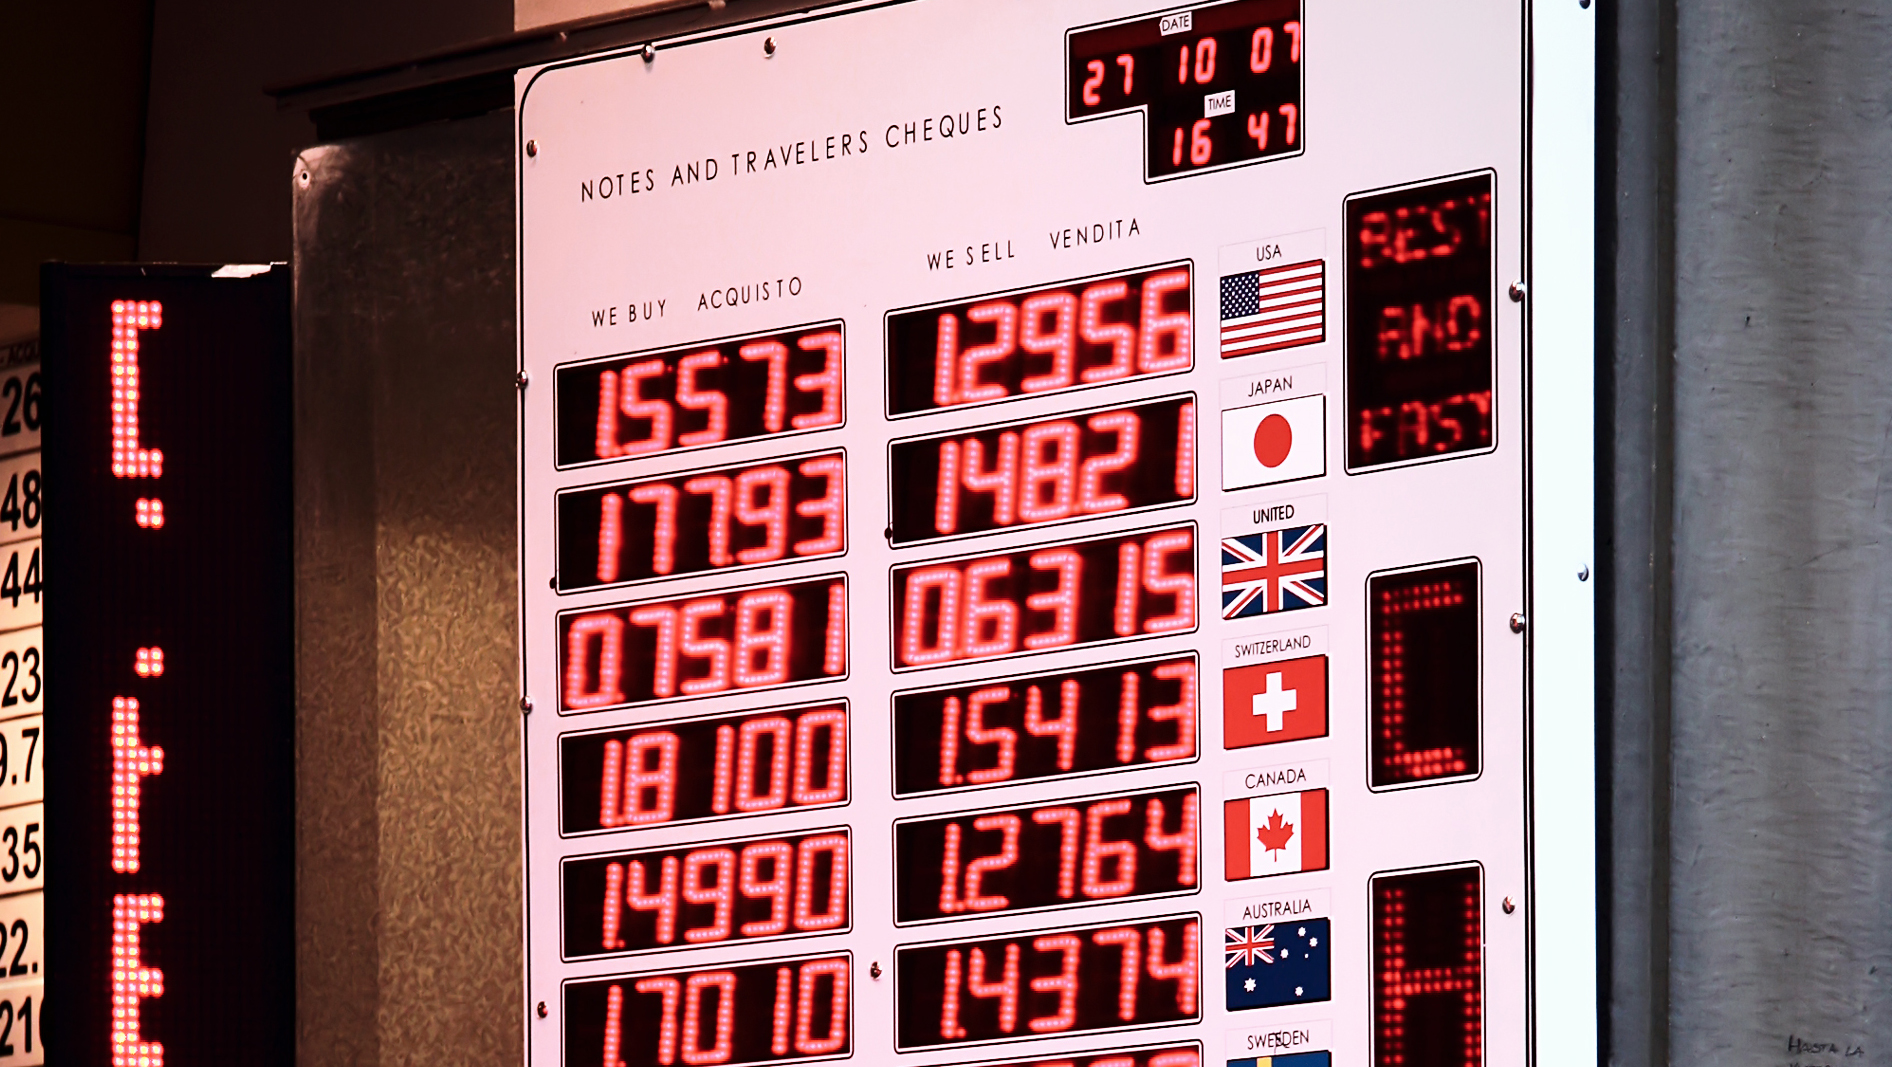 Currencies exchange rates wallboard